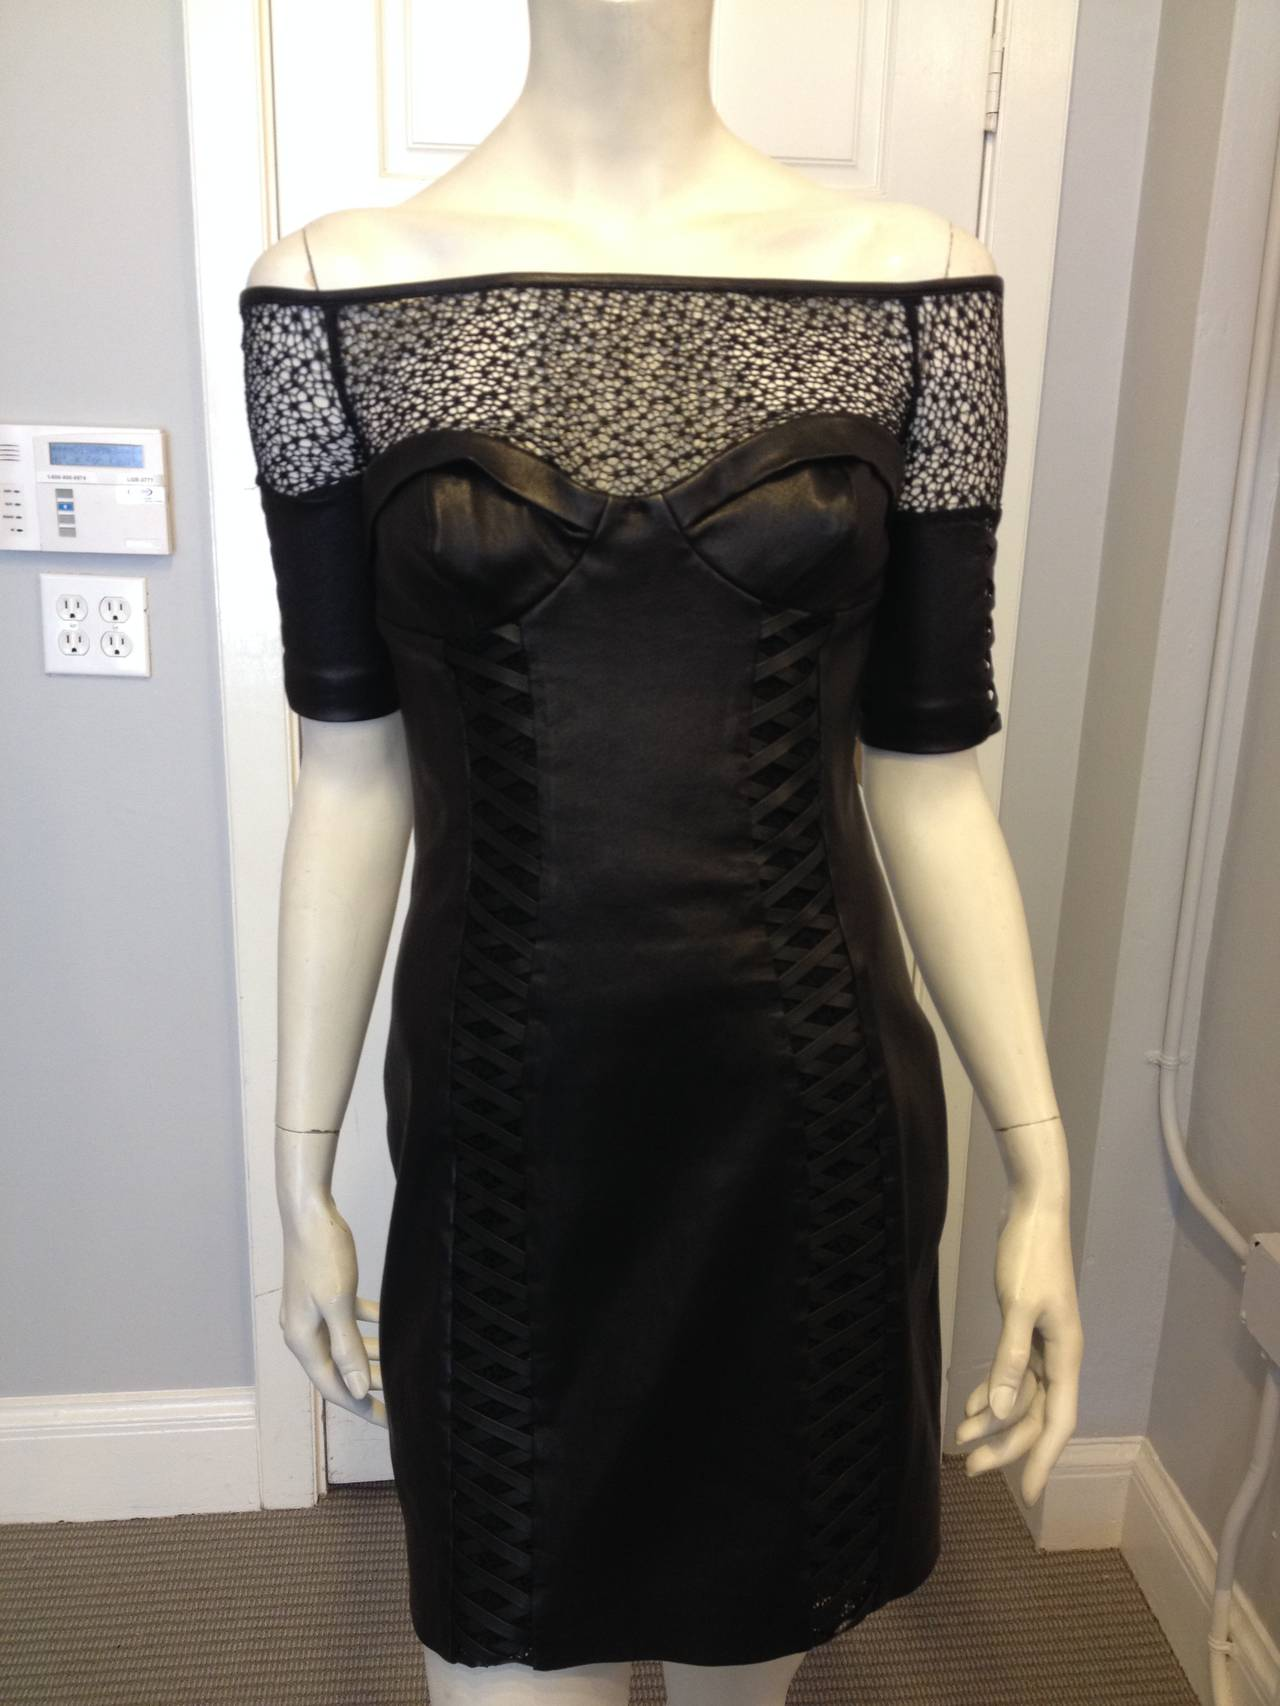 Kevork Kiledjian Black Leather and Lace Dress In Excellent Condition For Sale In San Francisco, CA